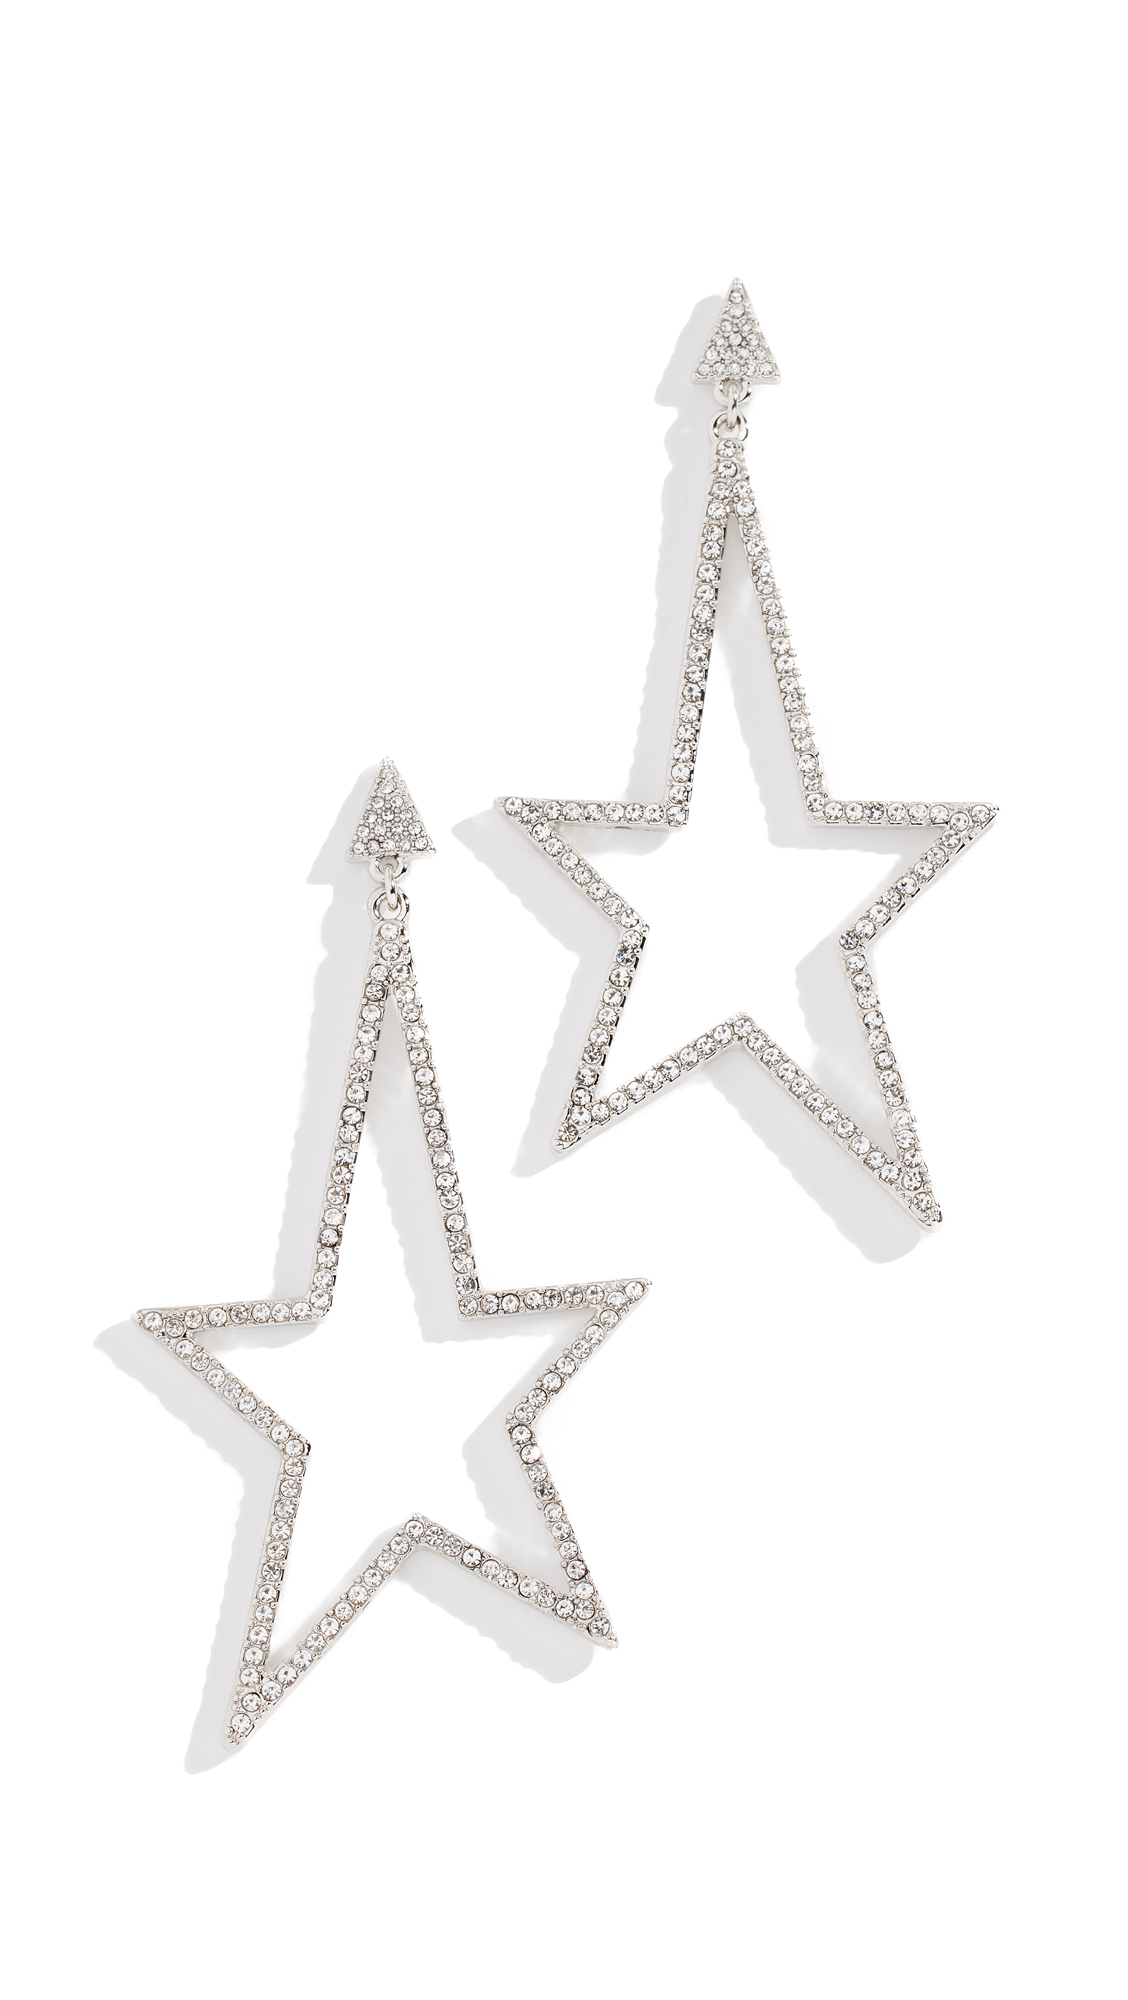 Rebecca Minkoff Stargazing Drama Stone Earrings - Silver/Crystal